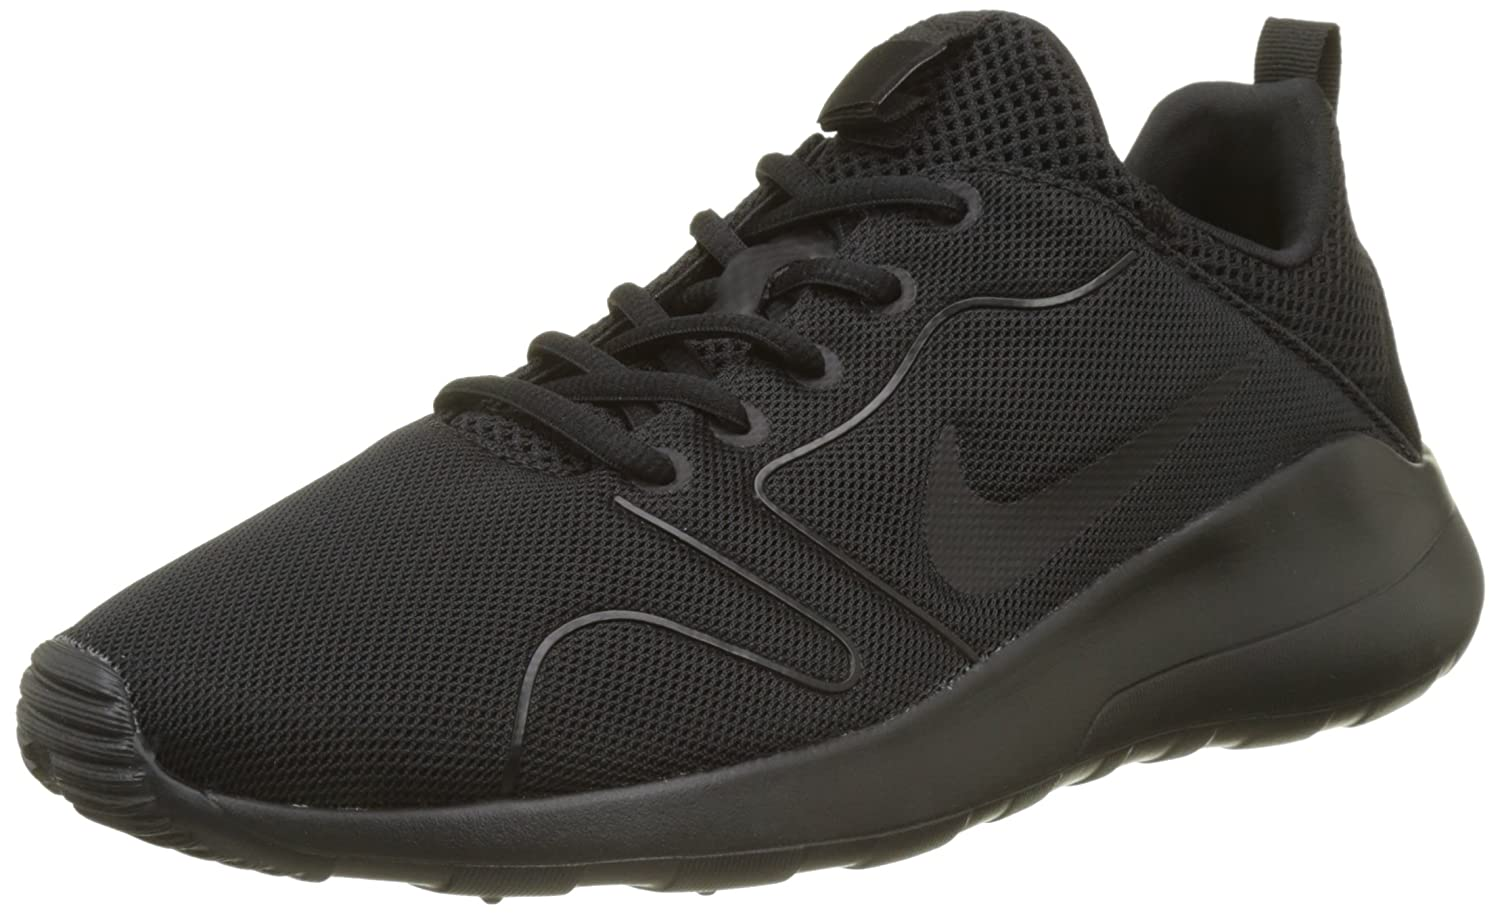 separation shoes 61596 543e5 Amazon.com   Nike Kaishi 2.0 Men Sneaker Black 833411 002, Size 40.5   Road  Running